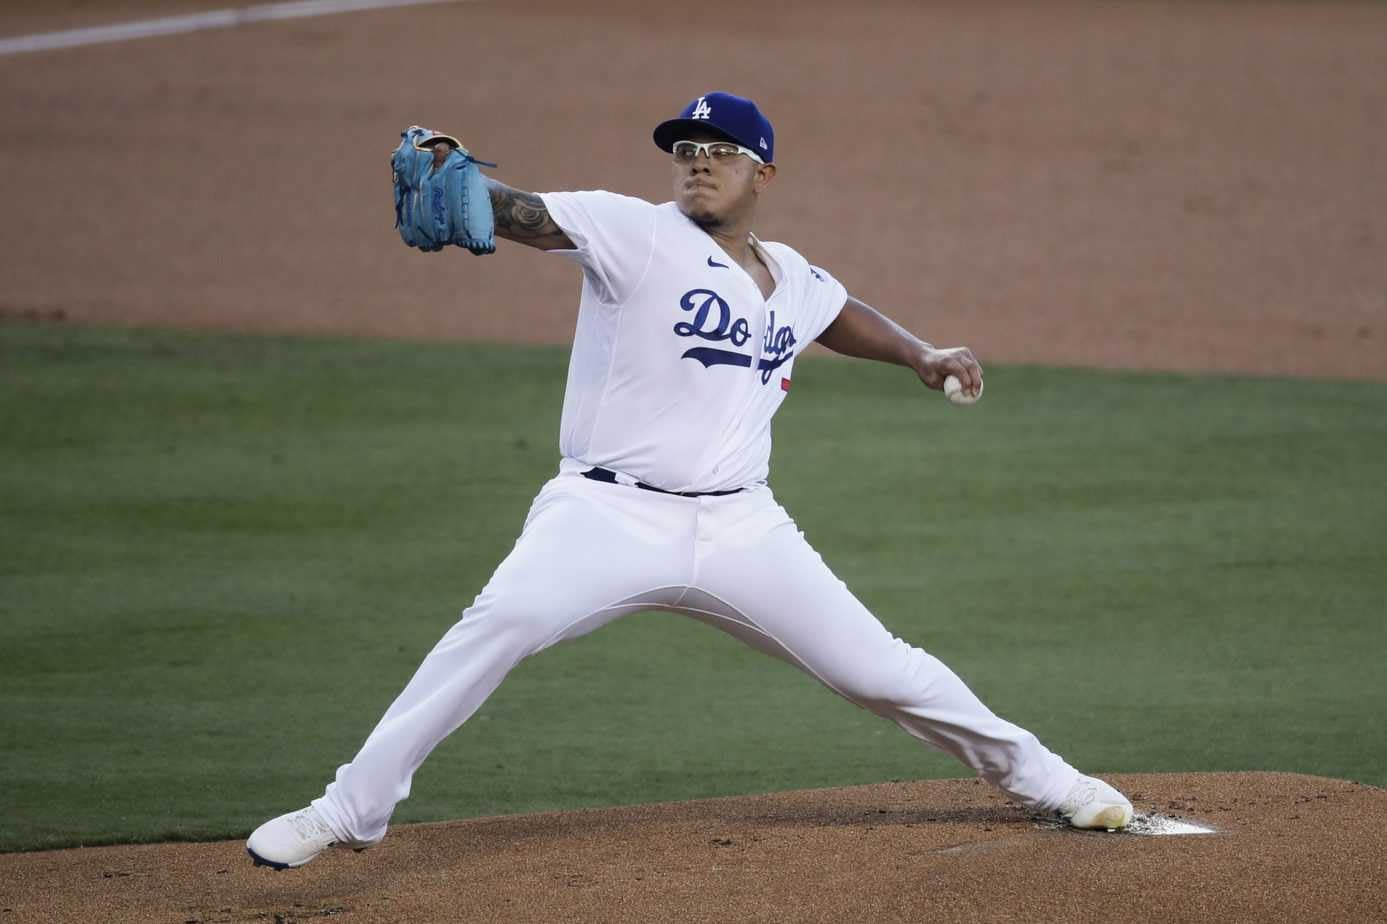 Best MLB bets today odds picks betting lines predictions spread parlay Julio Urias dodgers strikeouts totals 5.5 over/under Dodgers Monday August 30 2021